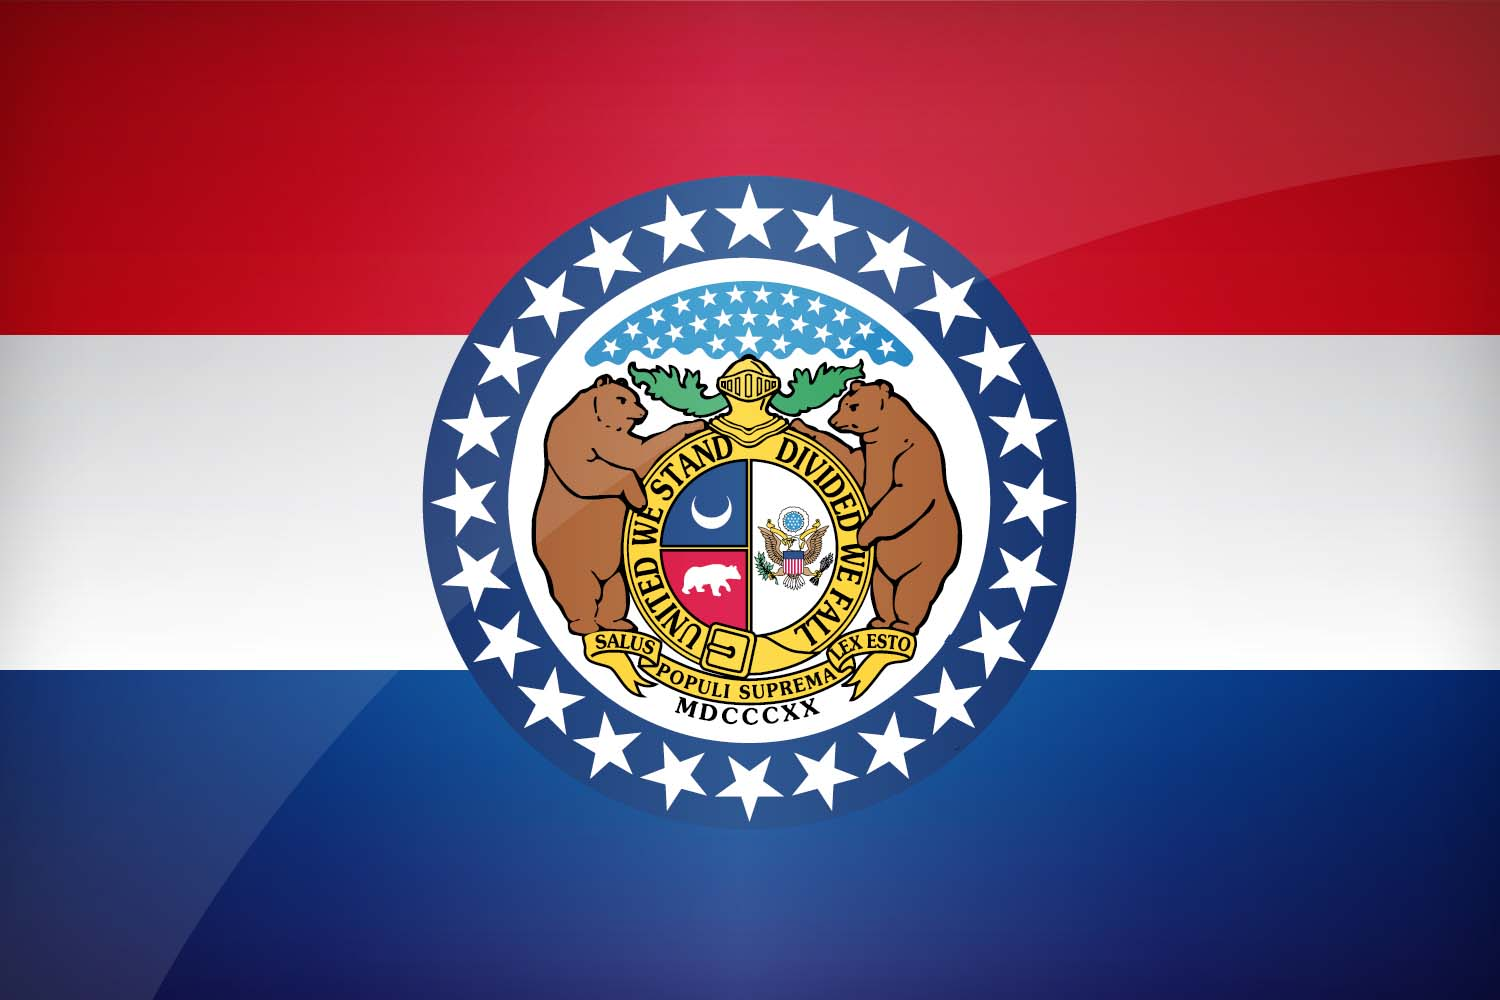 Flag of Missouri - Download the official Missouri's flag